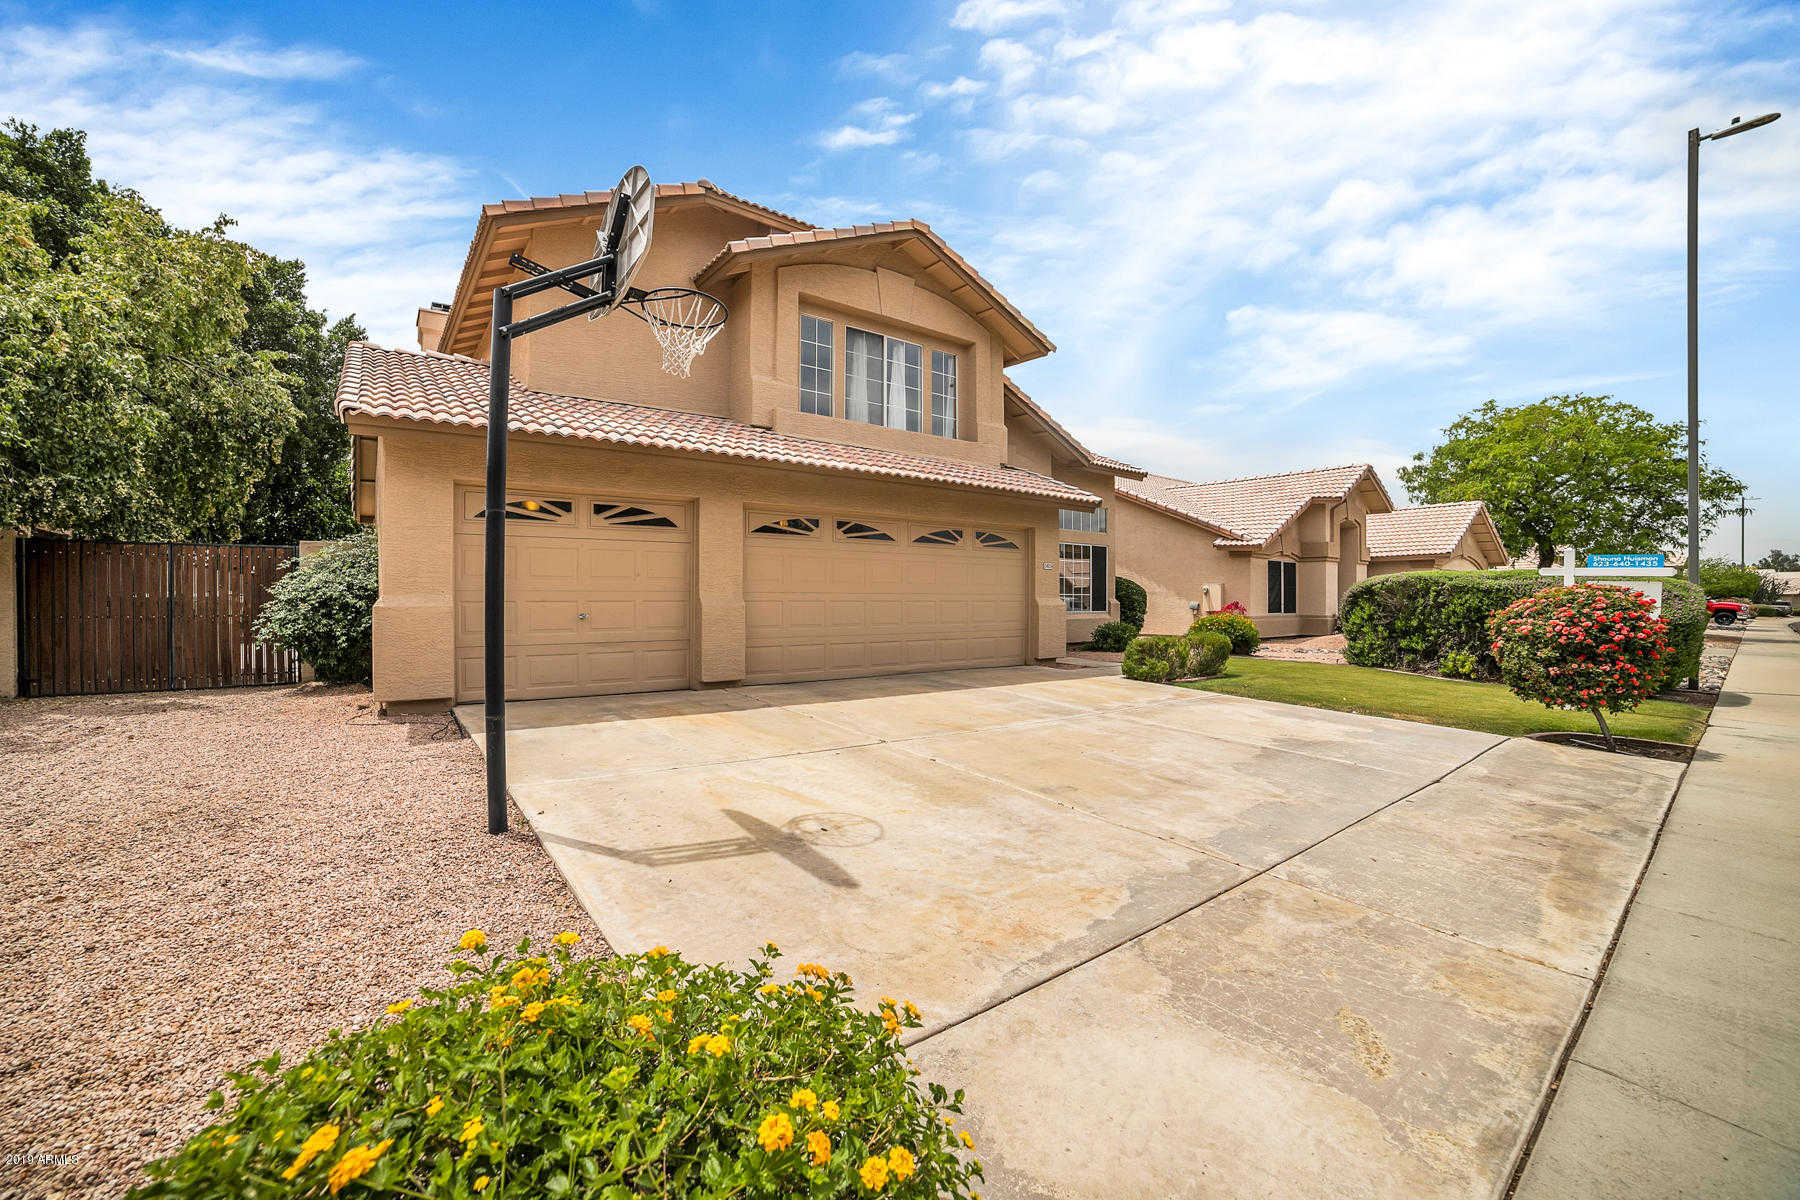 $347,000 - 4Br/3Ba - Home for Sale in Fulton Homes At Arrowhead Ranch Unit 2, Glendale